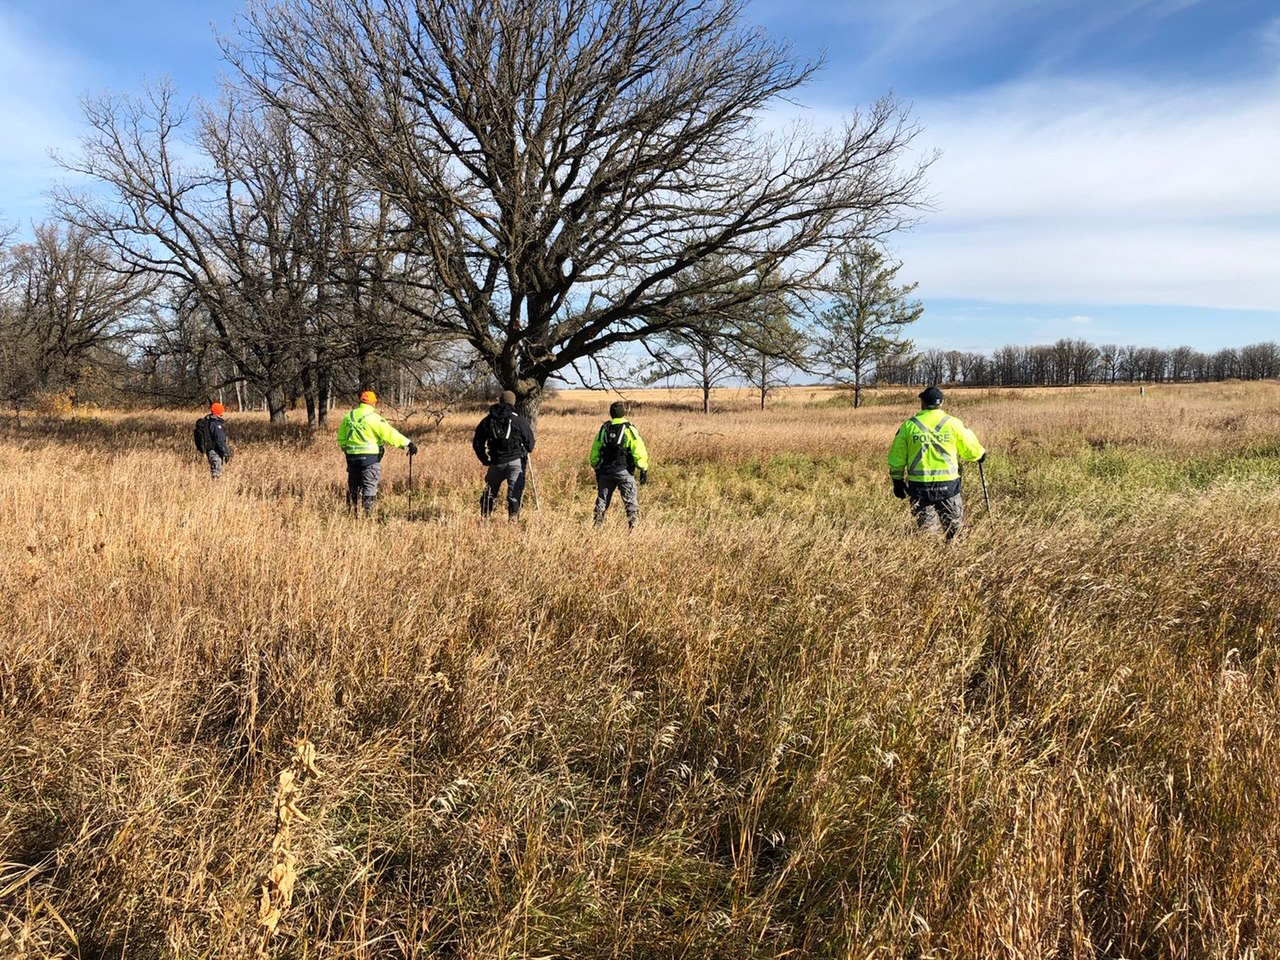 On Tuesday, RCMP officers returned to Roseau River Anishinabe First Nation to search the scene where Bud Paul's remains were discovered on Aug. 11.